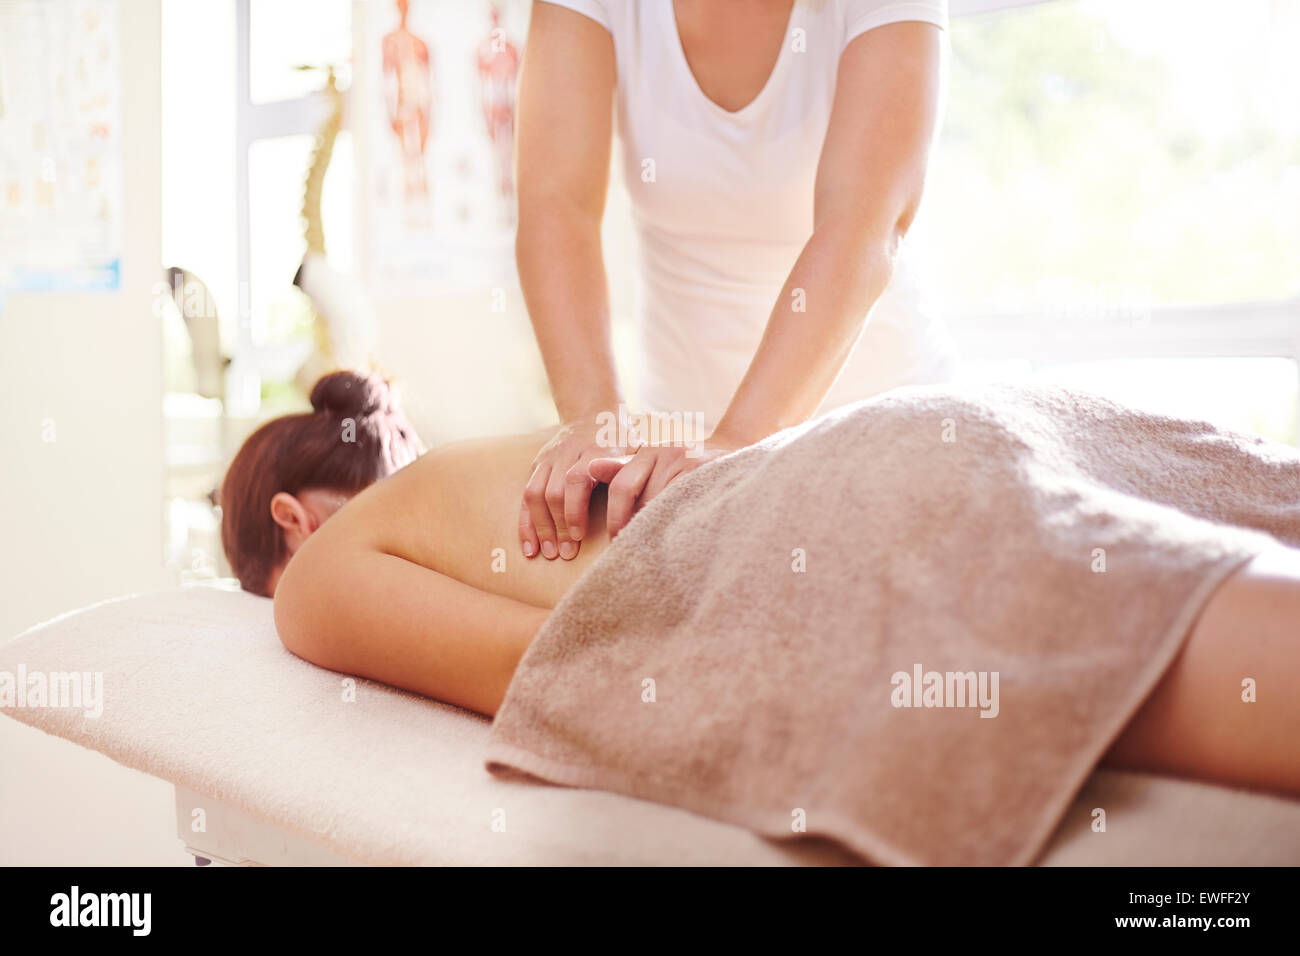 Woman receiving massage by masseuse - Stock Image